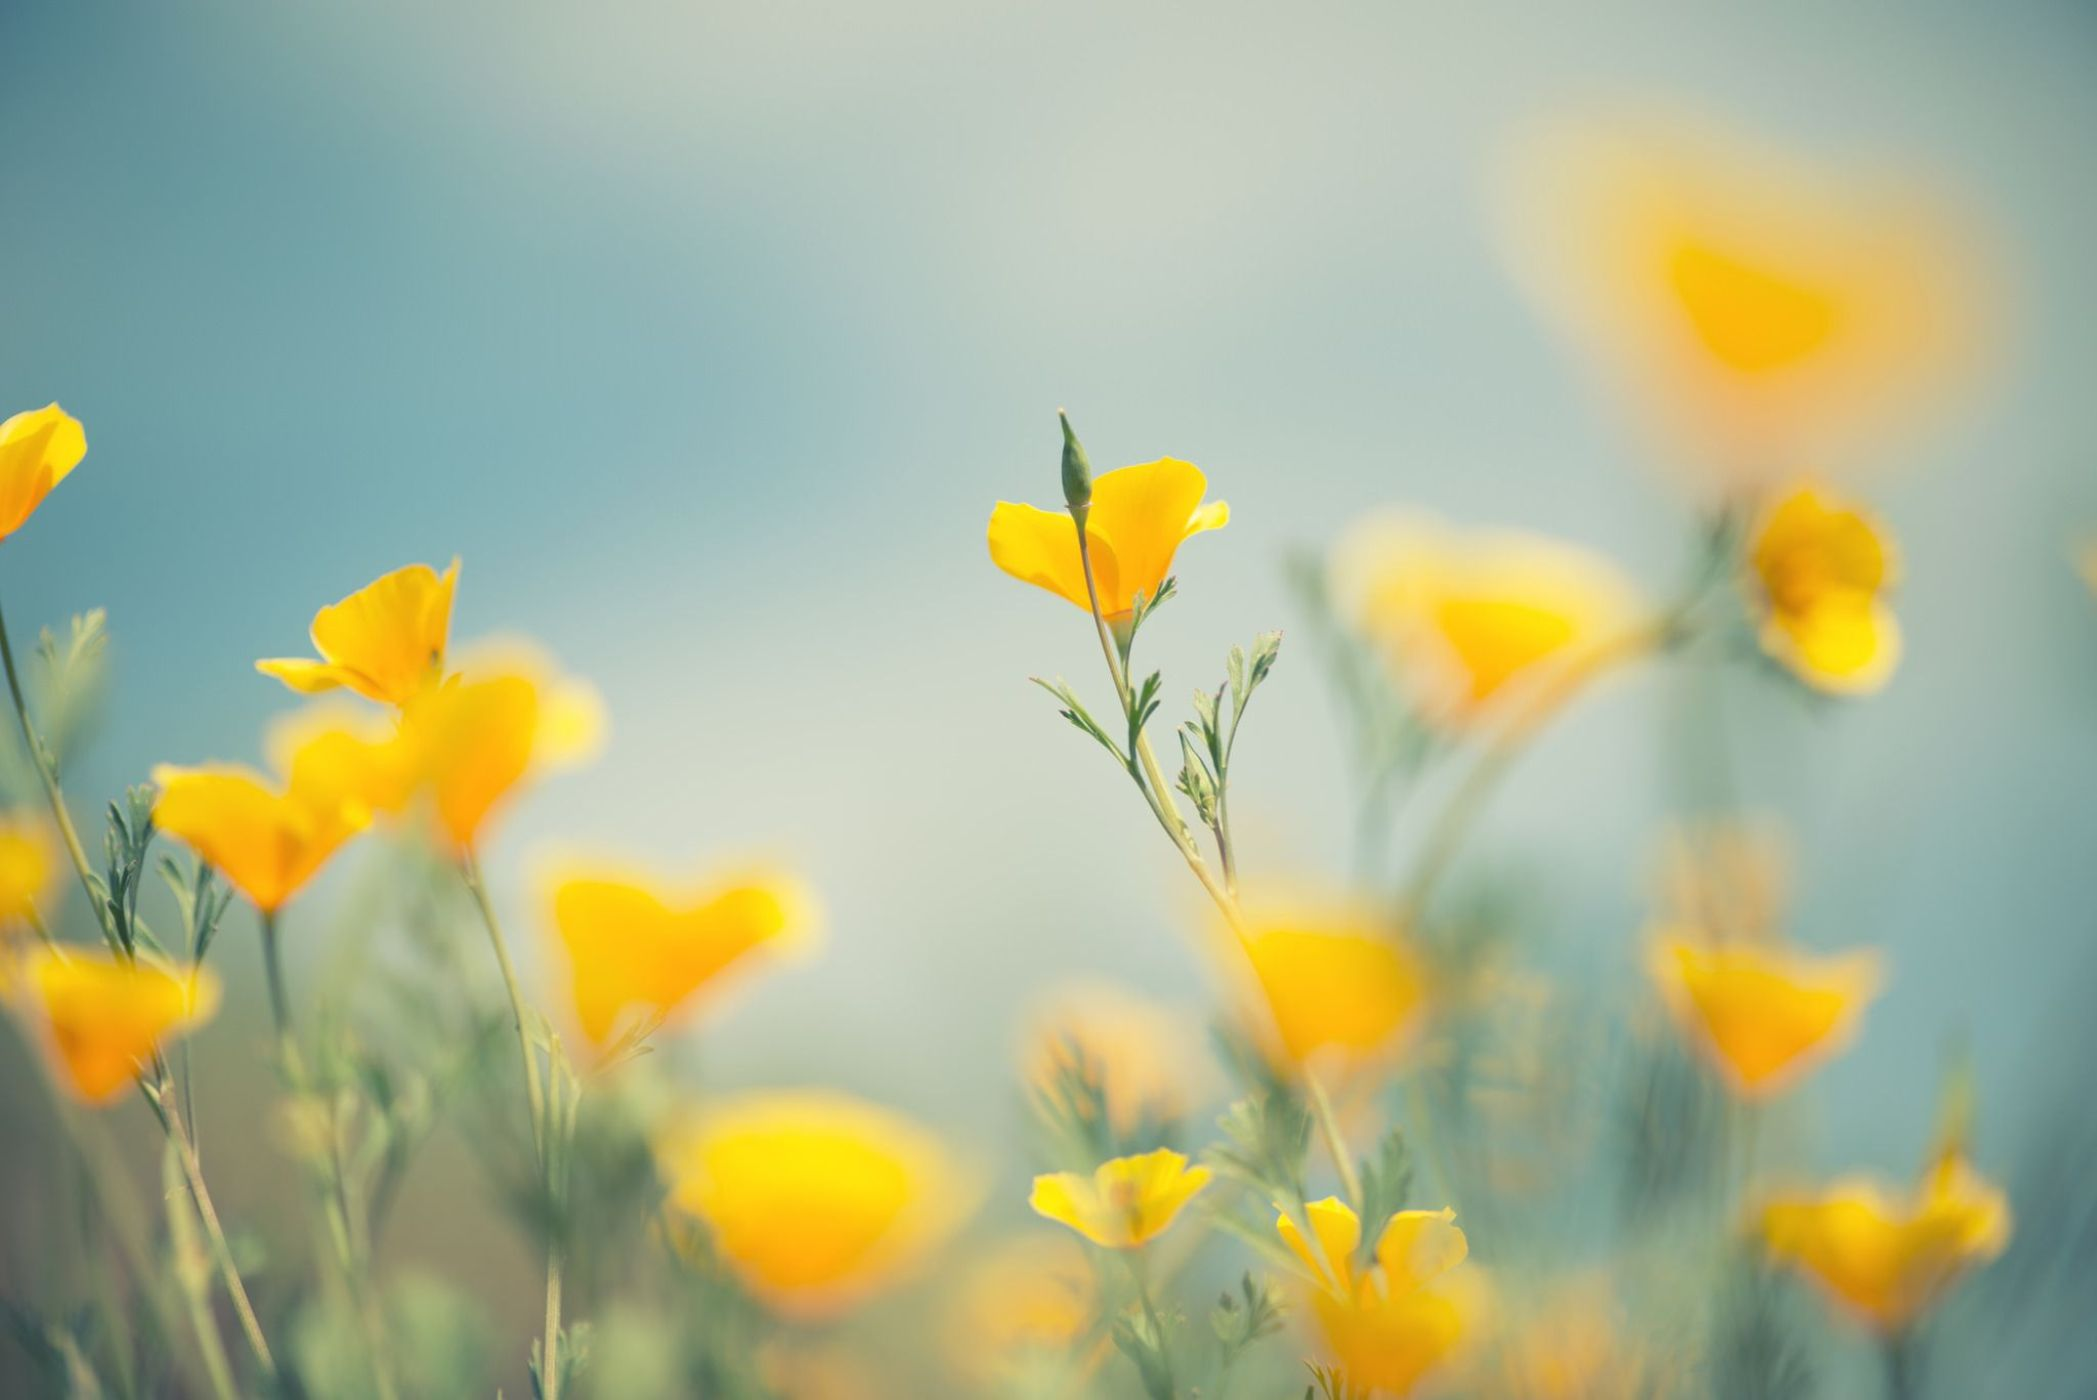 yellow meadow flowers in soft focus